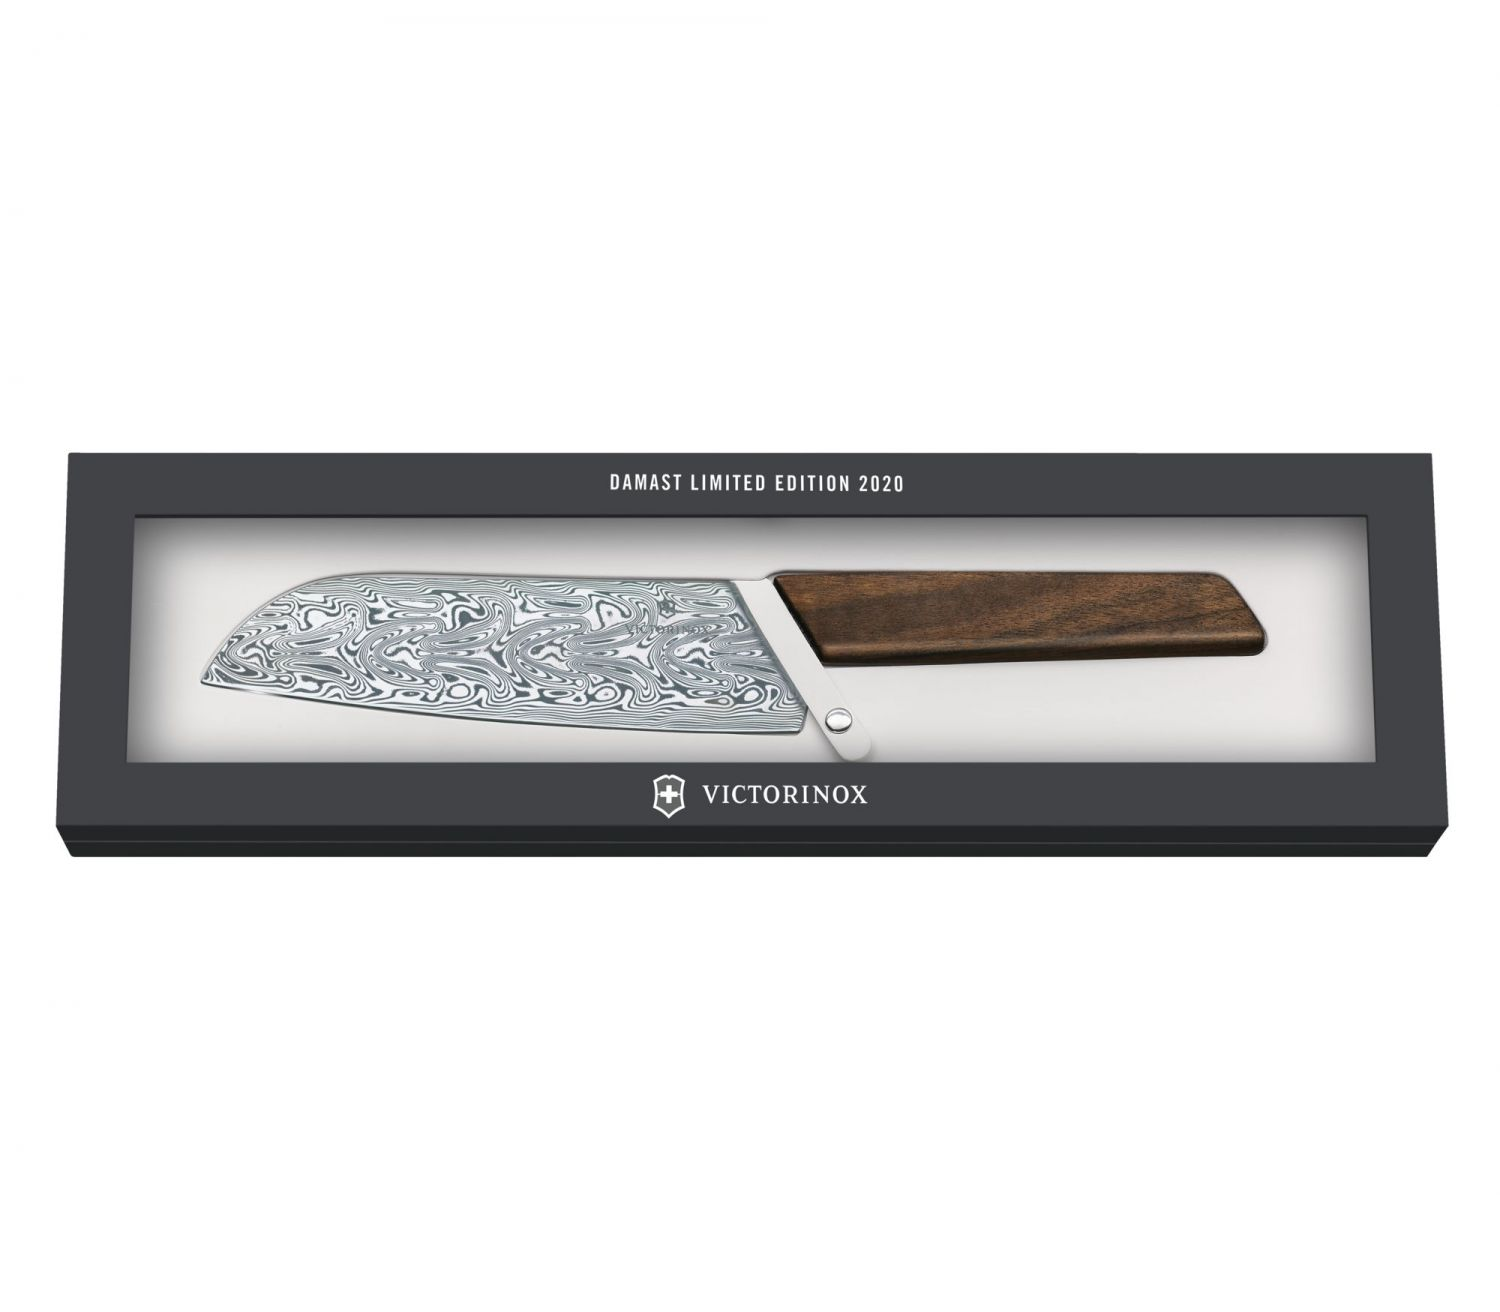 VICTORINOX SERIE LIMIT. DAMASCO 2020 - 6.9050.17J20